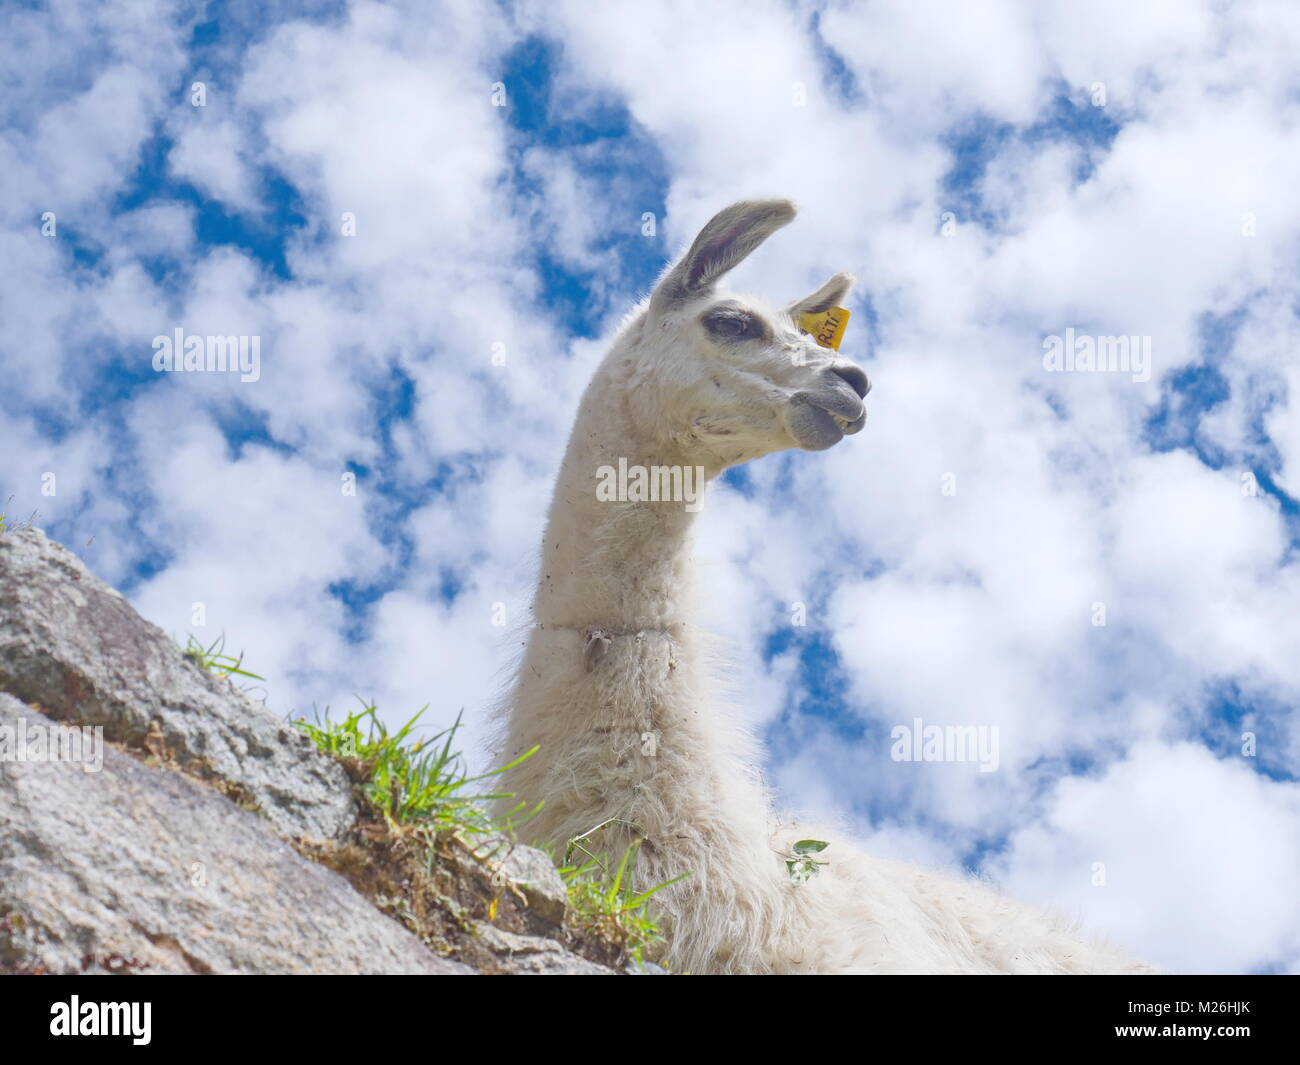 Looking up at a llama against a cloud spotted blue sky (lama glama) - Stock Image